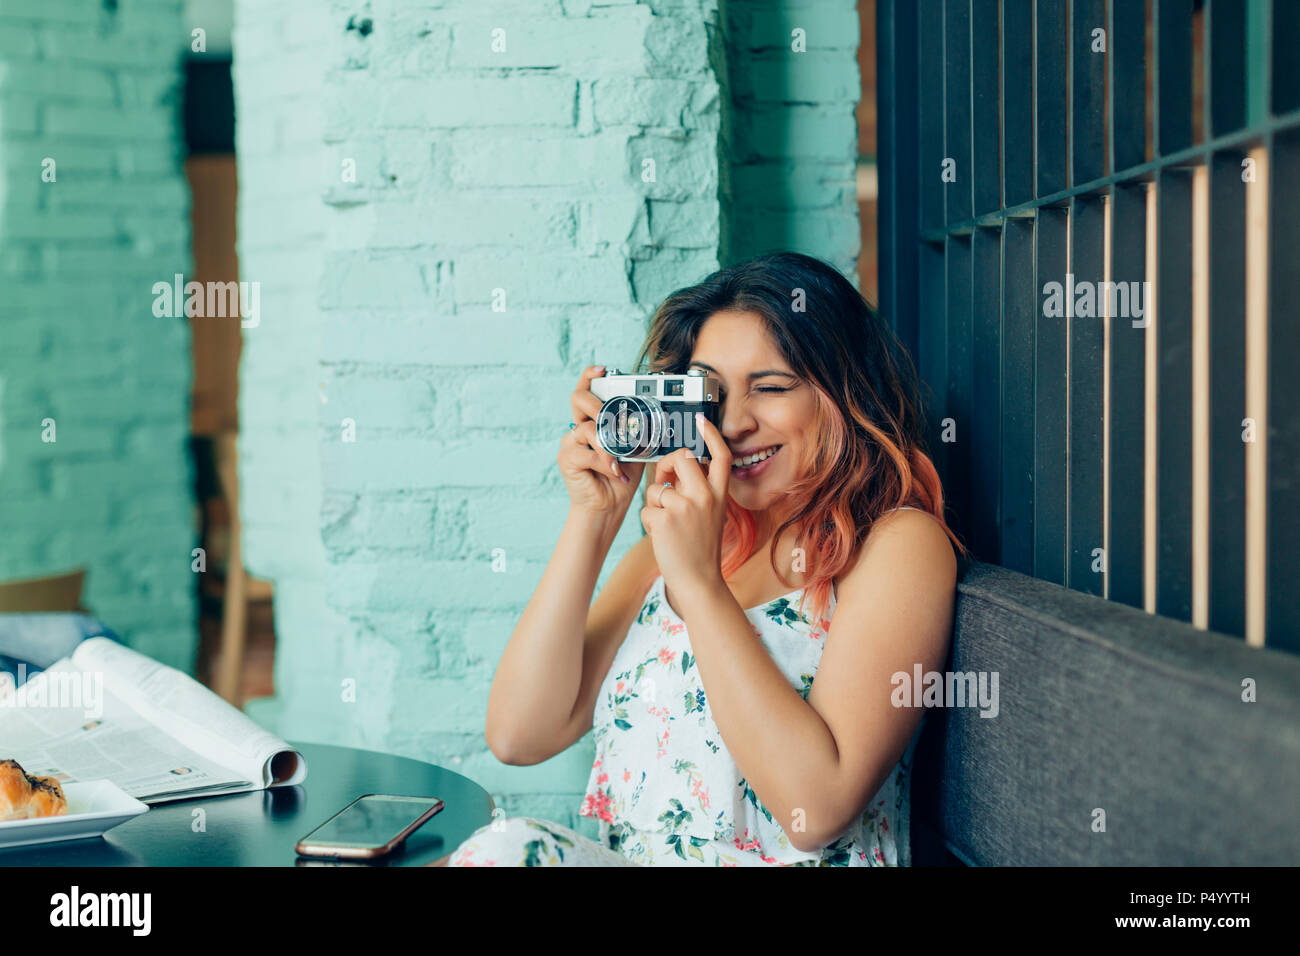 Smiling woman sitting in coffee shop taking pictures with camera - Stock Image